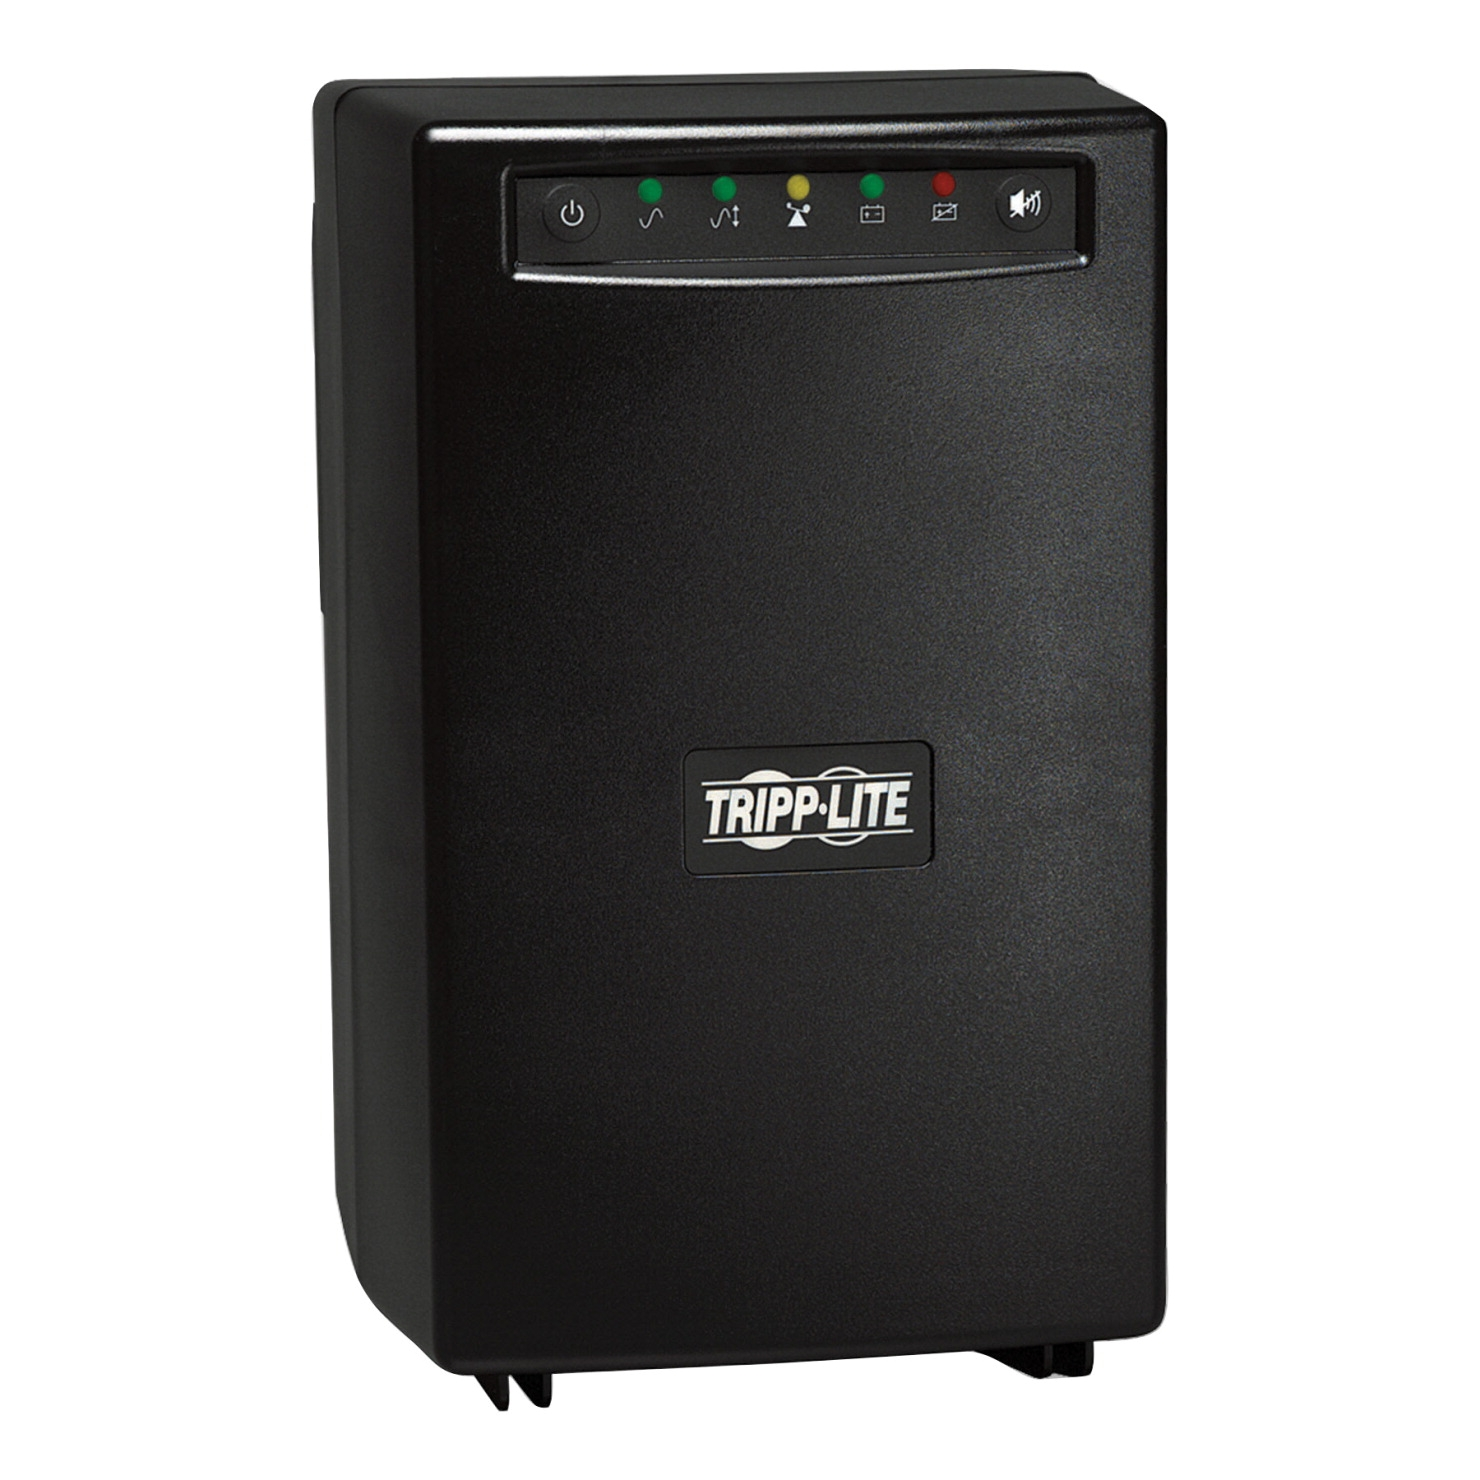 Tripp Lite Vs 8-outlet Line Interactive Ups System-75 Min Backup Usb Port; 1500 Va; 11.8 In H X 7.3 In W X 7-1/2 In D; Black - 1101508 - Facilities Management Electrical Cords Strips 1101508